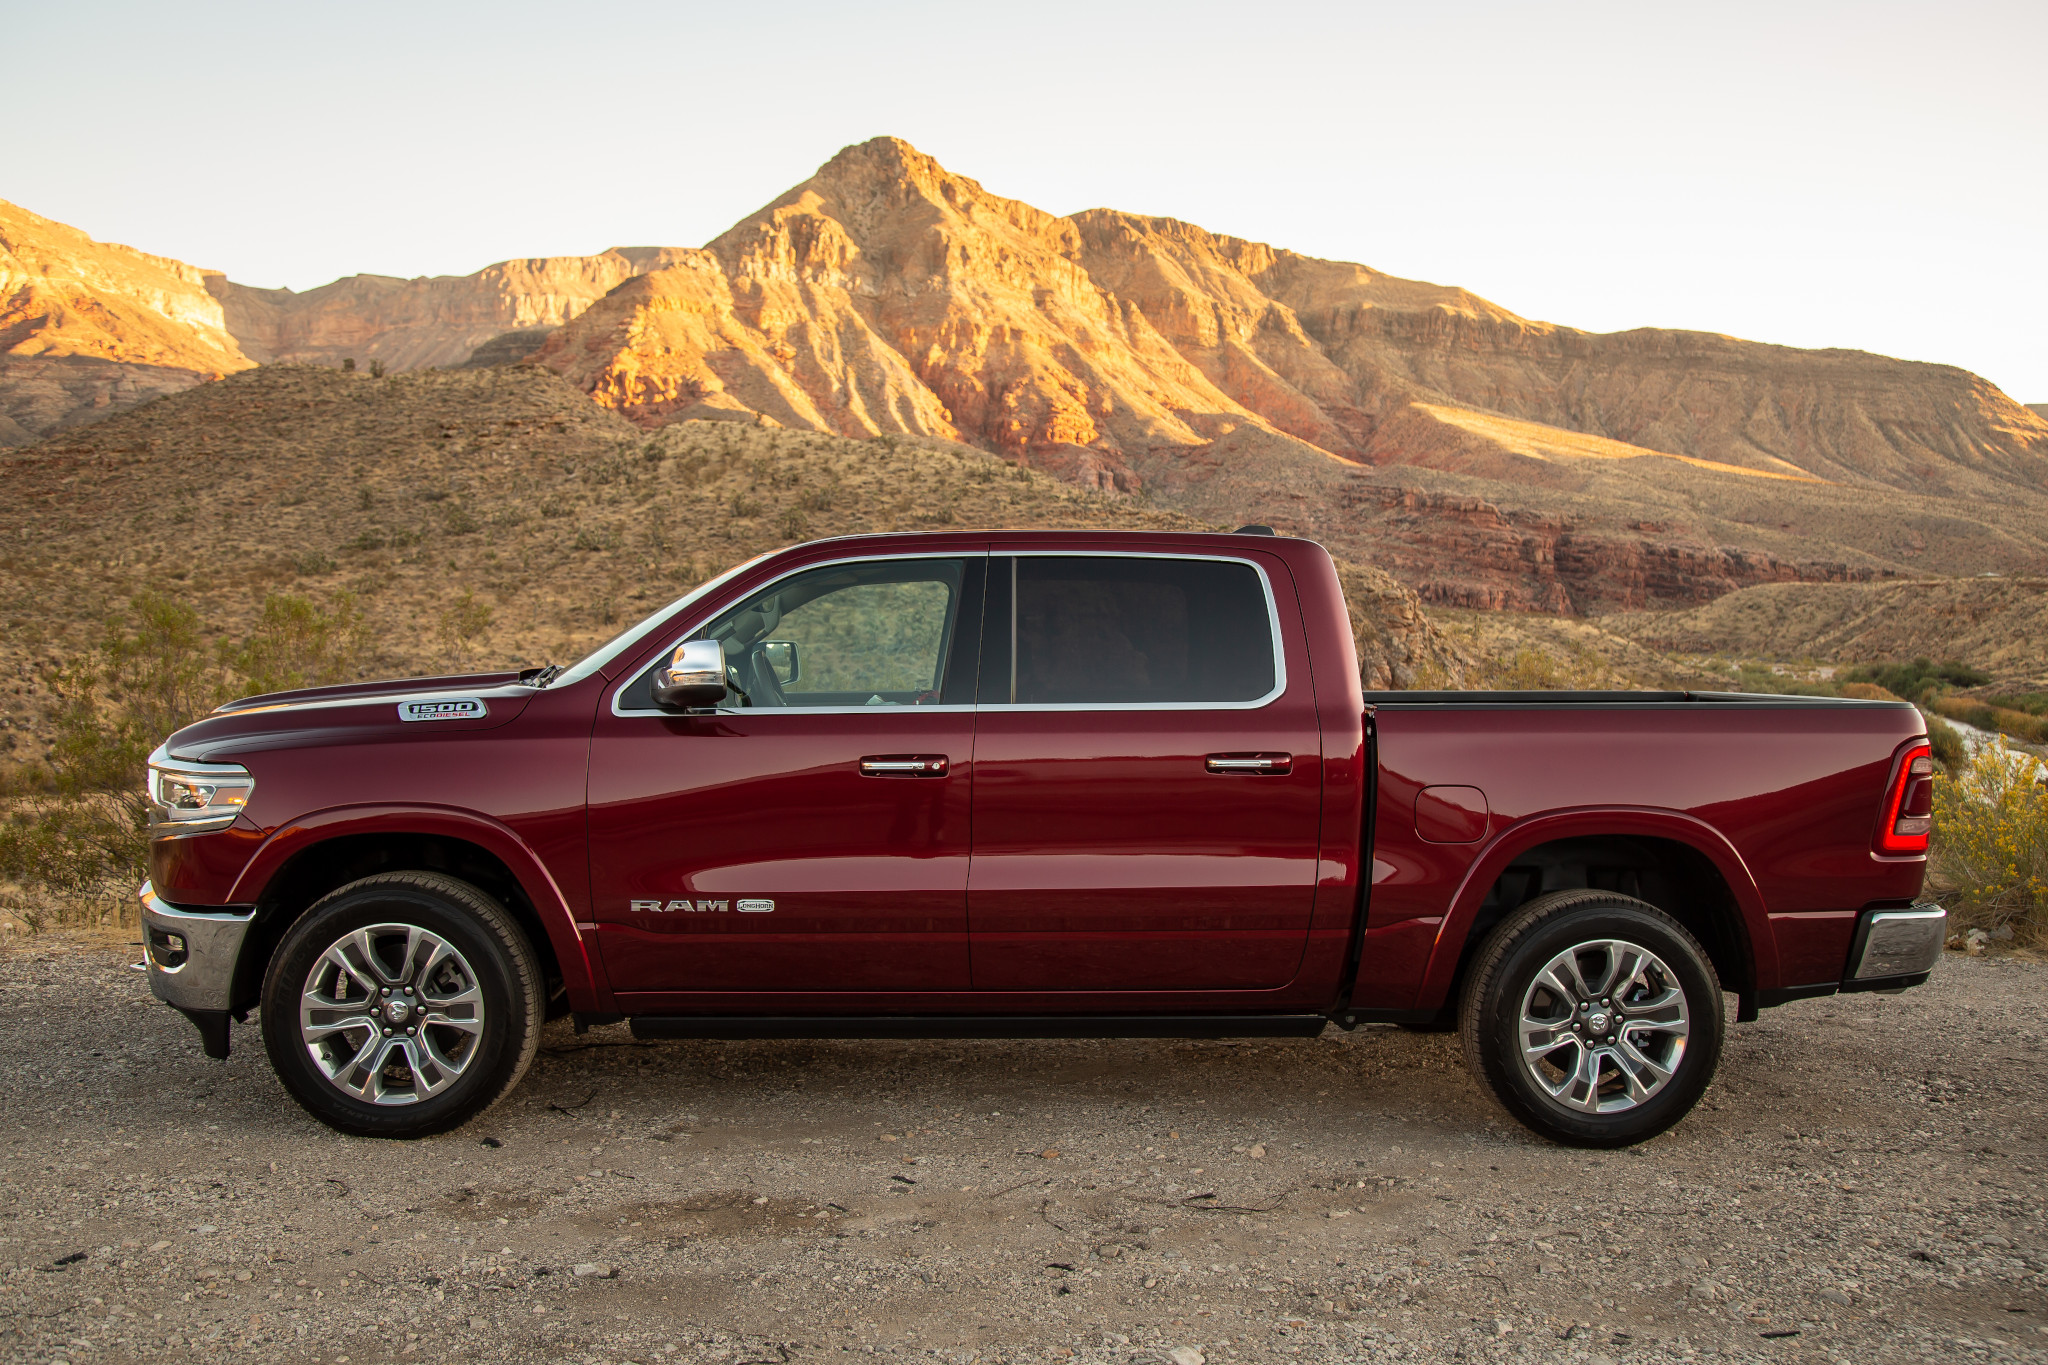 Ecodiesel >> All The Pickup Truck News 2020 Ram 1500 Ecodiesel Real